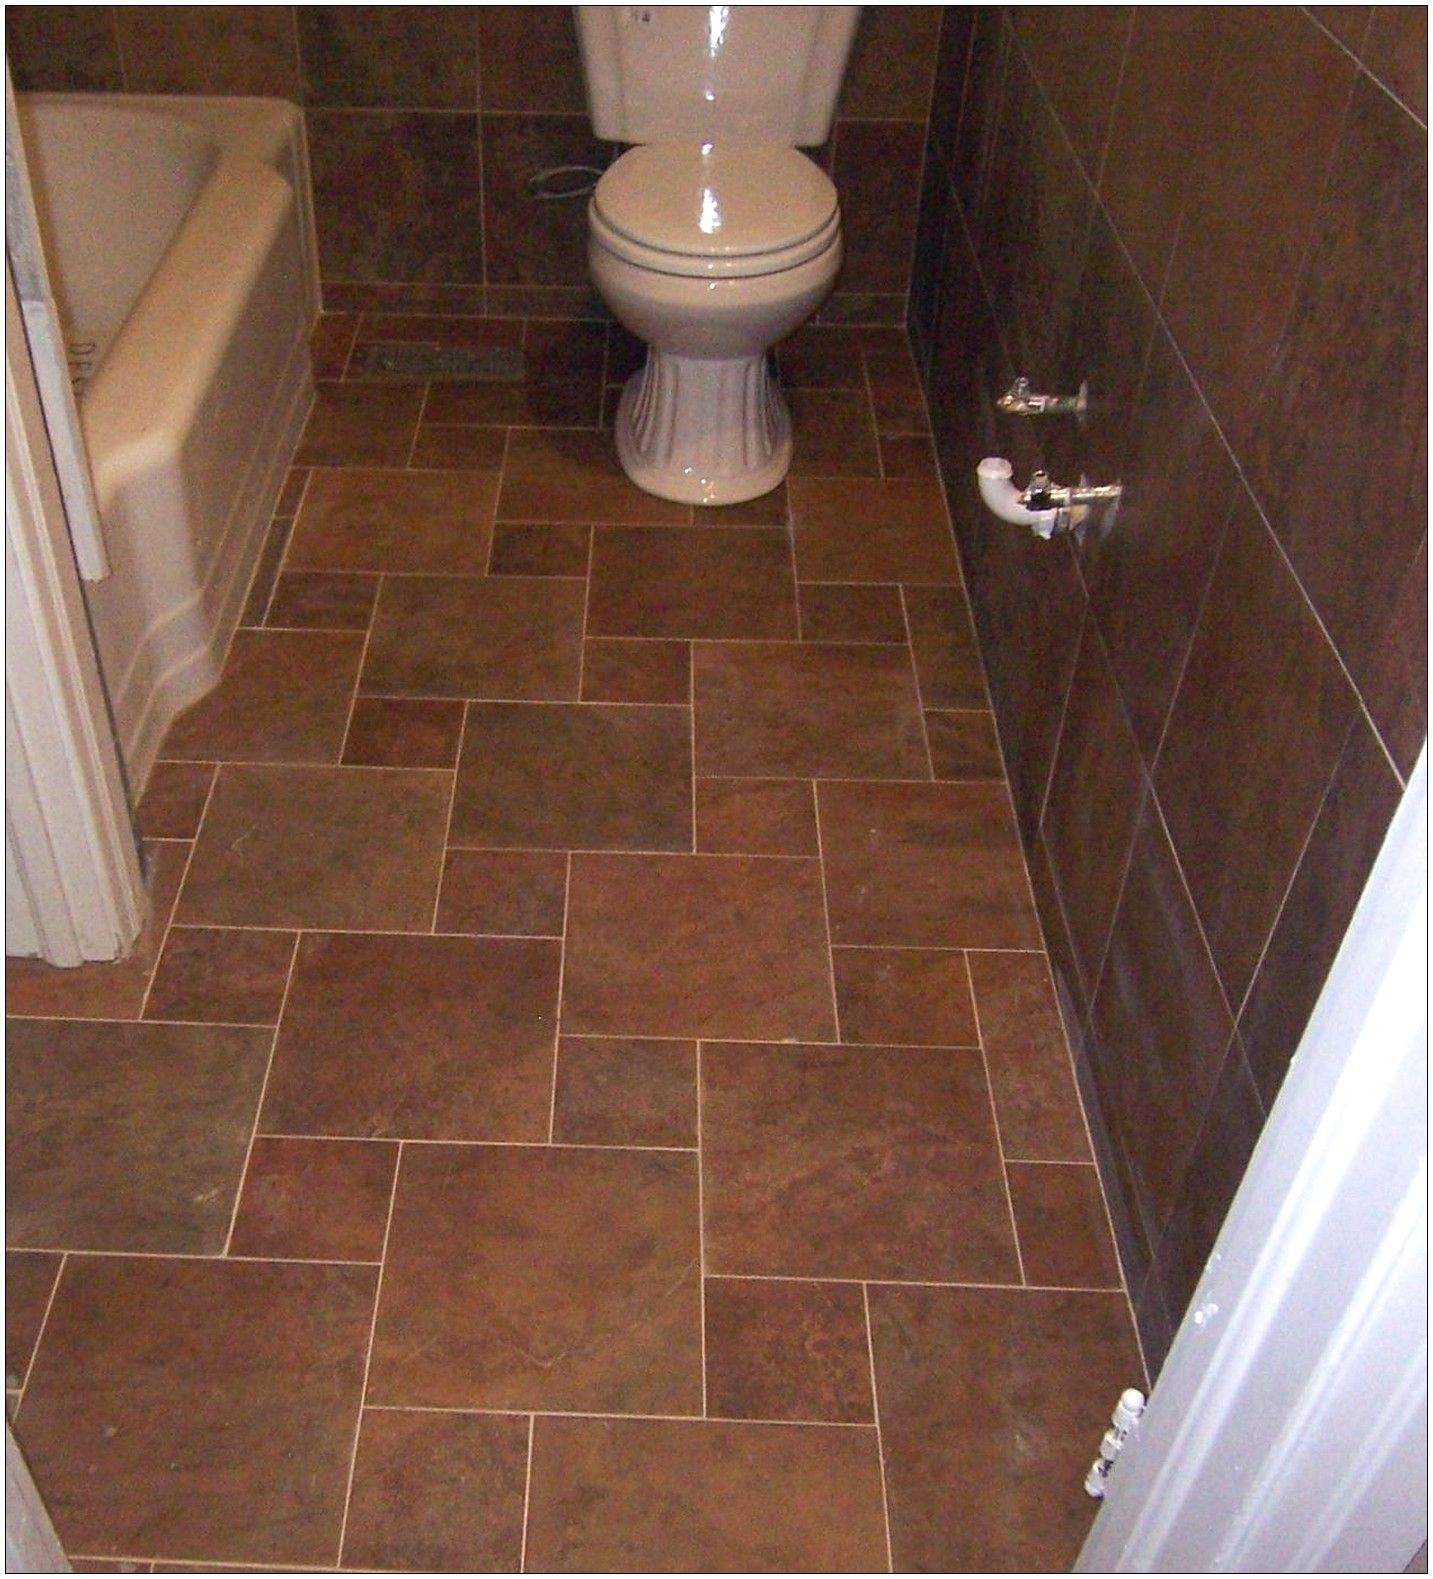 small bathroom floor tile designs bathroom floor tile patterns jpg - Tile Designs For Bathroom Floors